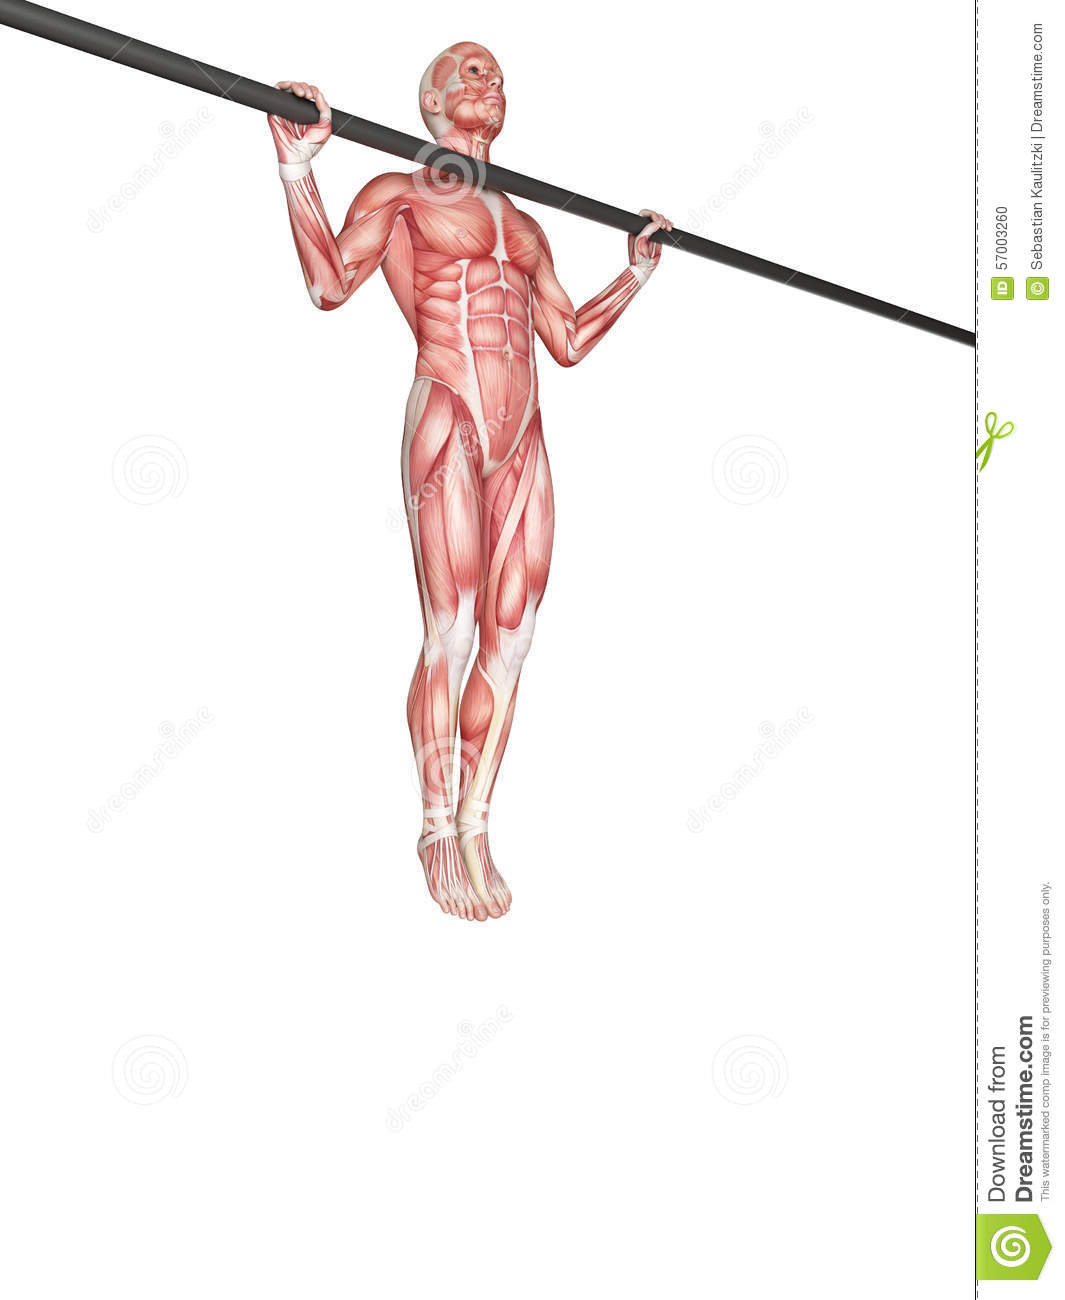 Wide grip pull ups